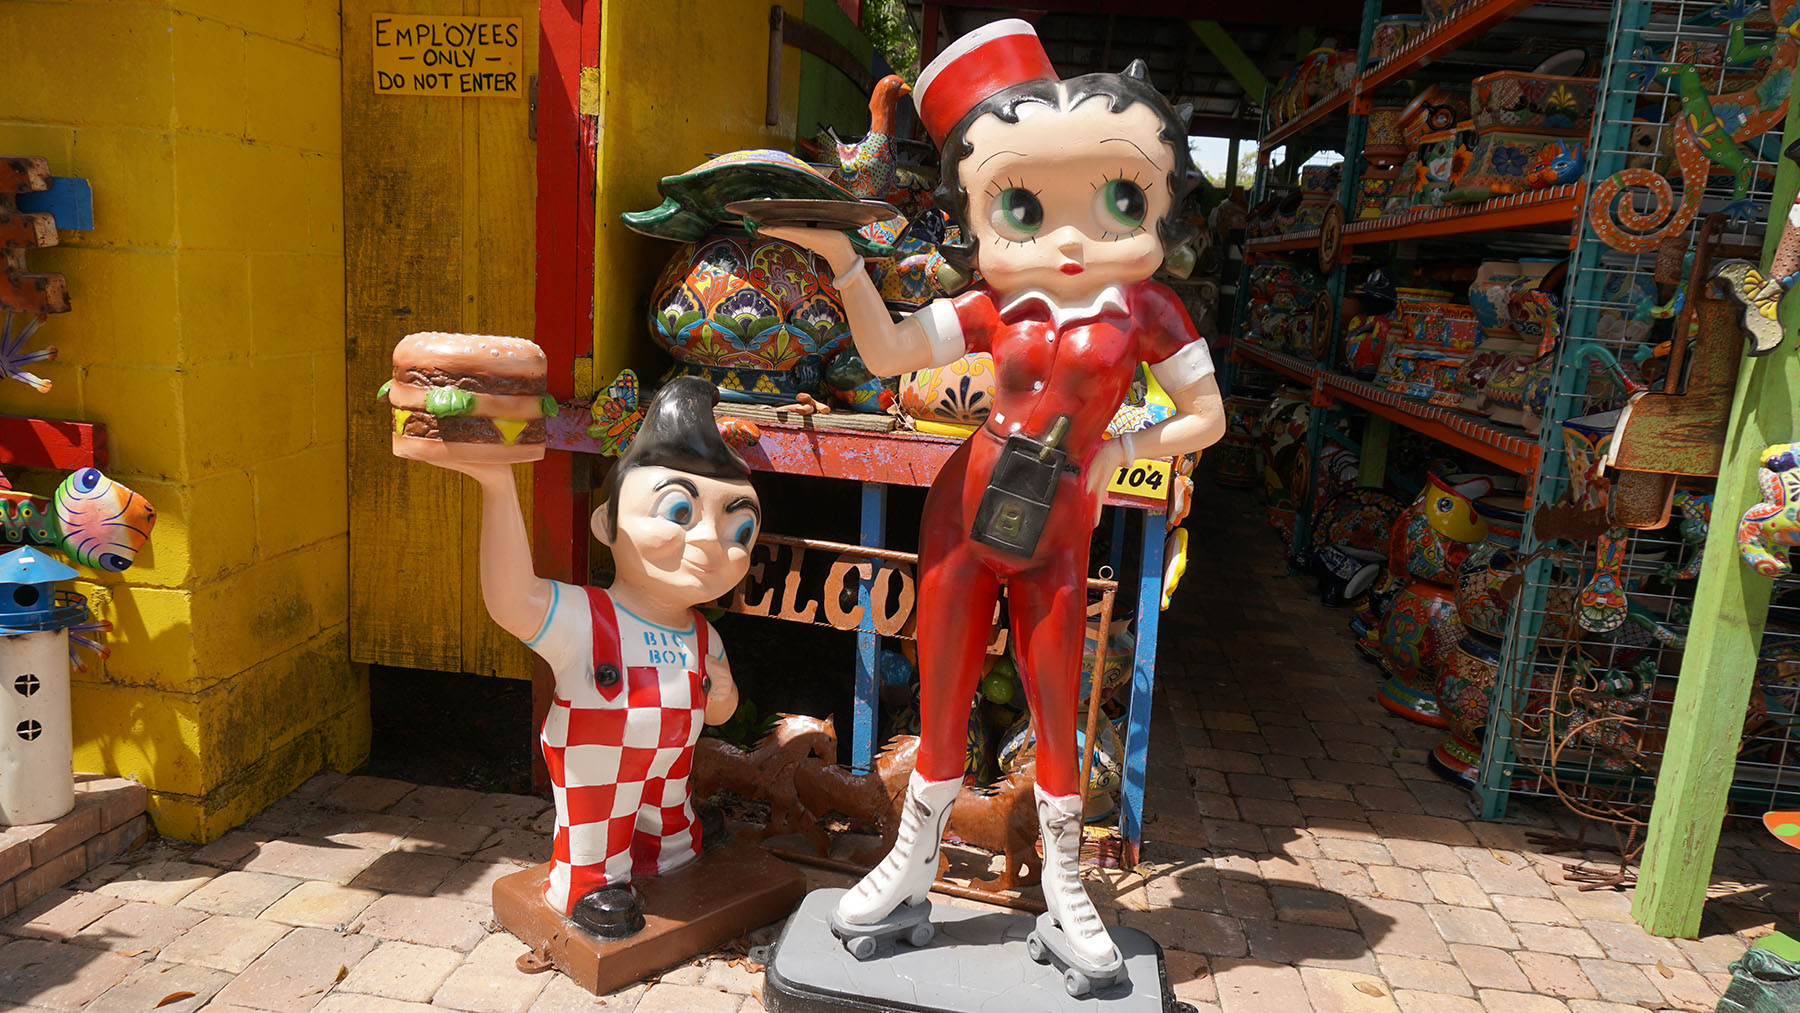 Betty Boop and Big Boy